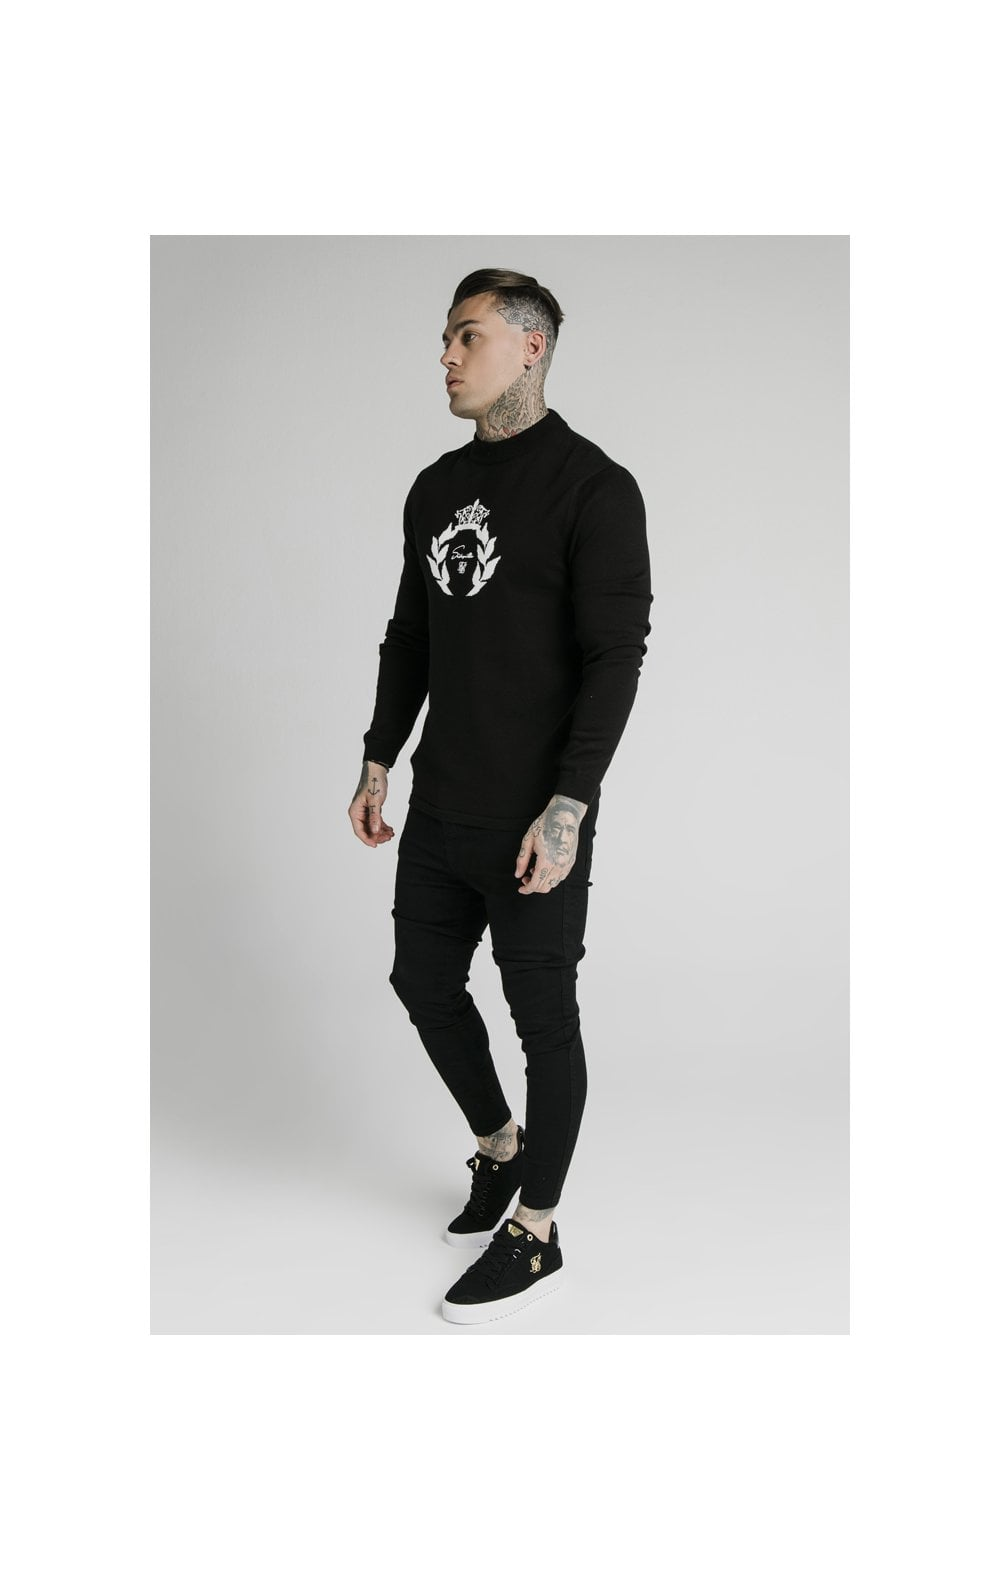 SikSilk High Neck Knitted Prestige Sweater – Black (3)